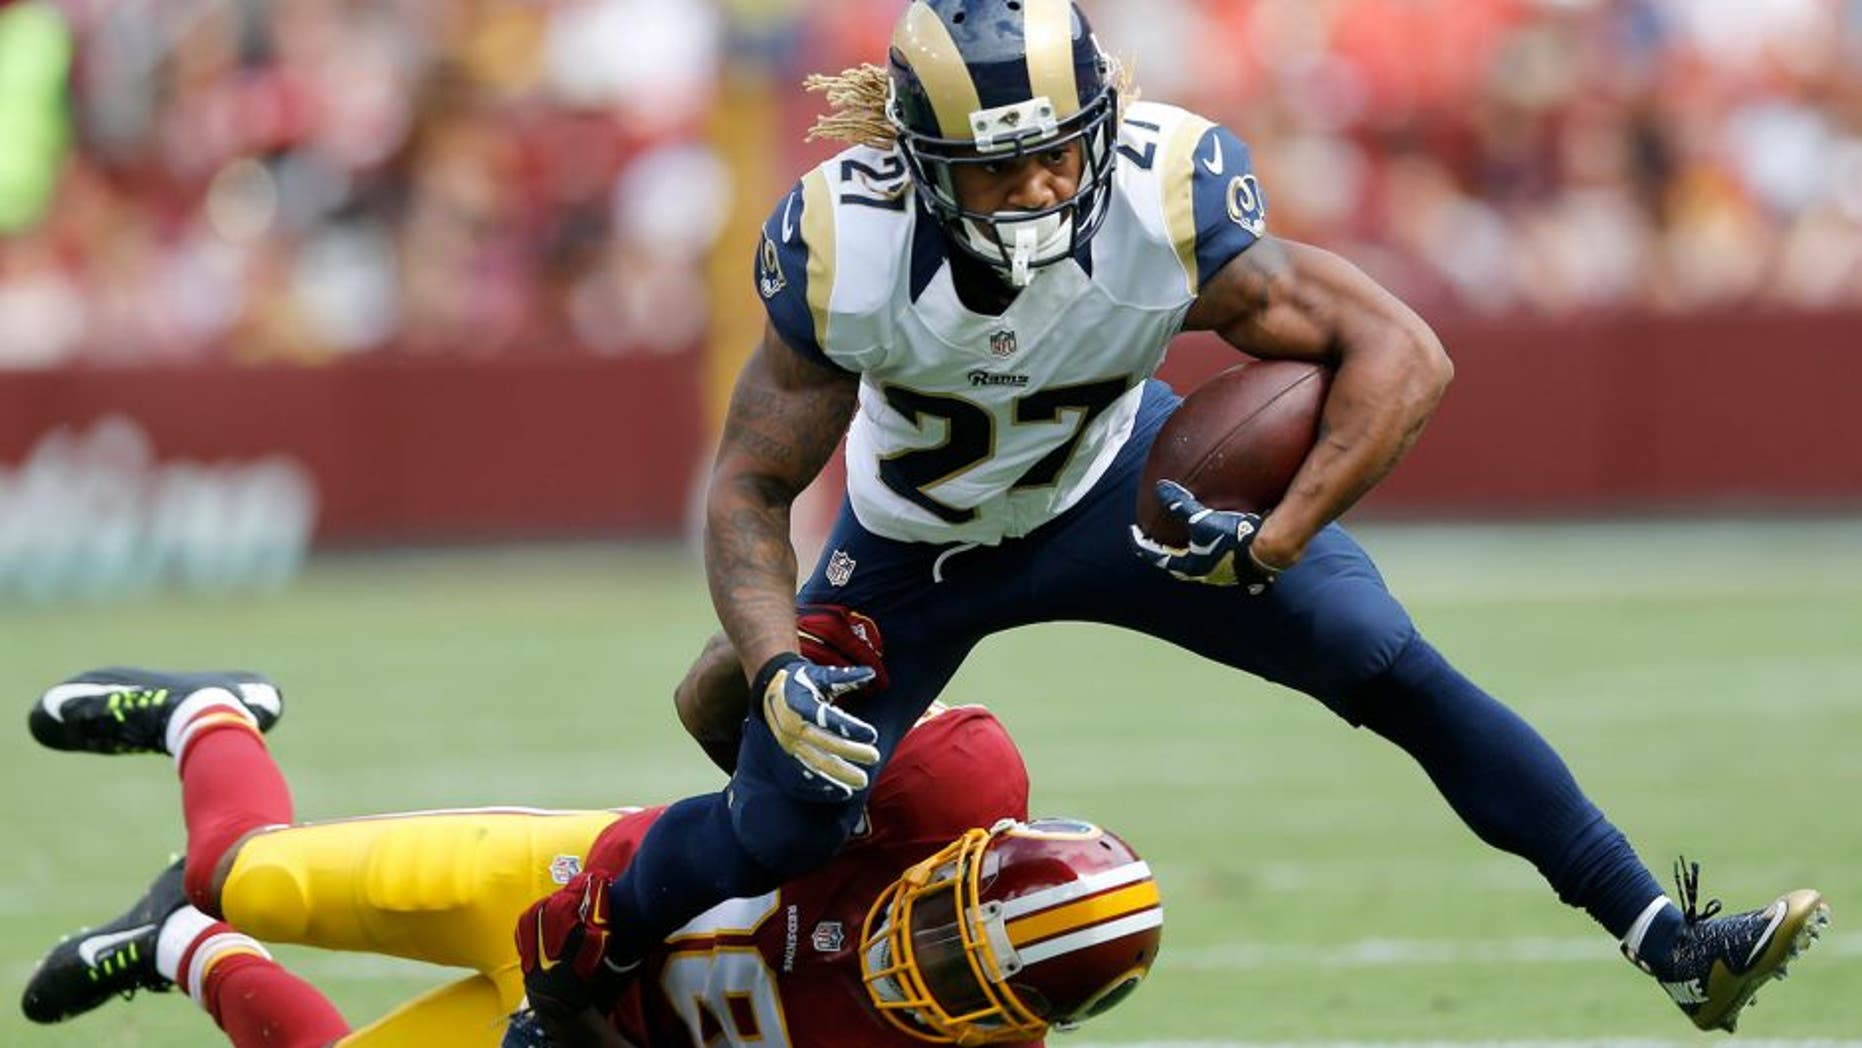 Washington Redskins free safety Dashon Goldson (38) pulls St. Louis Rams running back Tre Mason (27) to the turf during the second half of an NFL football game in Landover, Md., Sunday, Sept. 20, 2015. (AP Photo/Patrick Semansky)